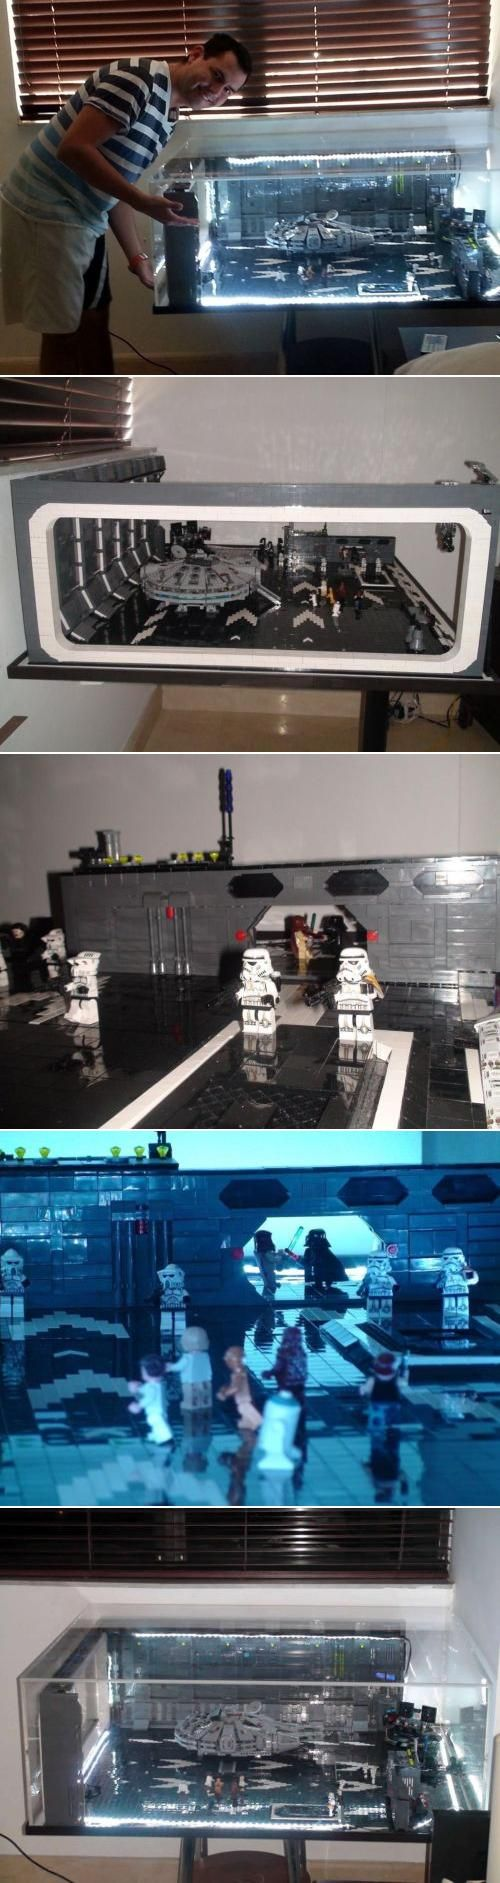 "Five months in the making, this amazing LEGO creation is made with over 10,000 bricks. Based on the Hangar 327 Escape scene from Star Wars, Episode IV, ""A New Hope"", it comes with 19 mini-figures, the Millennial Falcon, and a custom made display table. Is your set complete without it?"